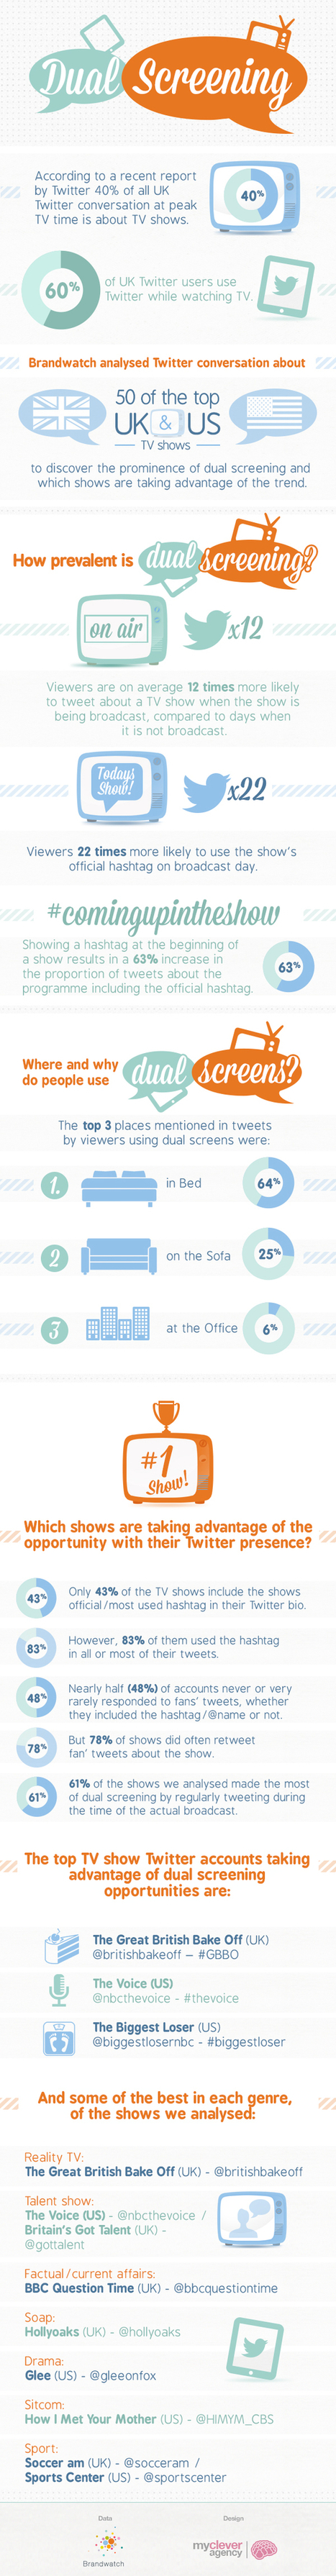 TV and Social Media: A Dual Screening Investigation (Infographic) | Social TV is everywhere | Scoop.it